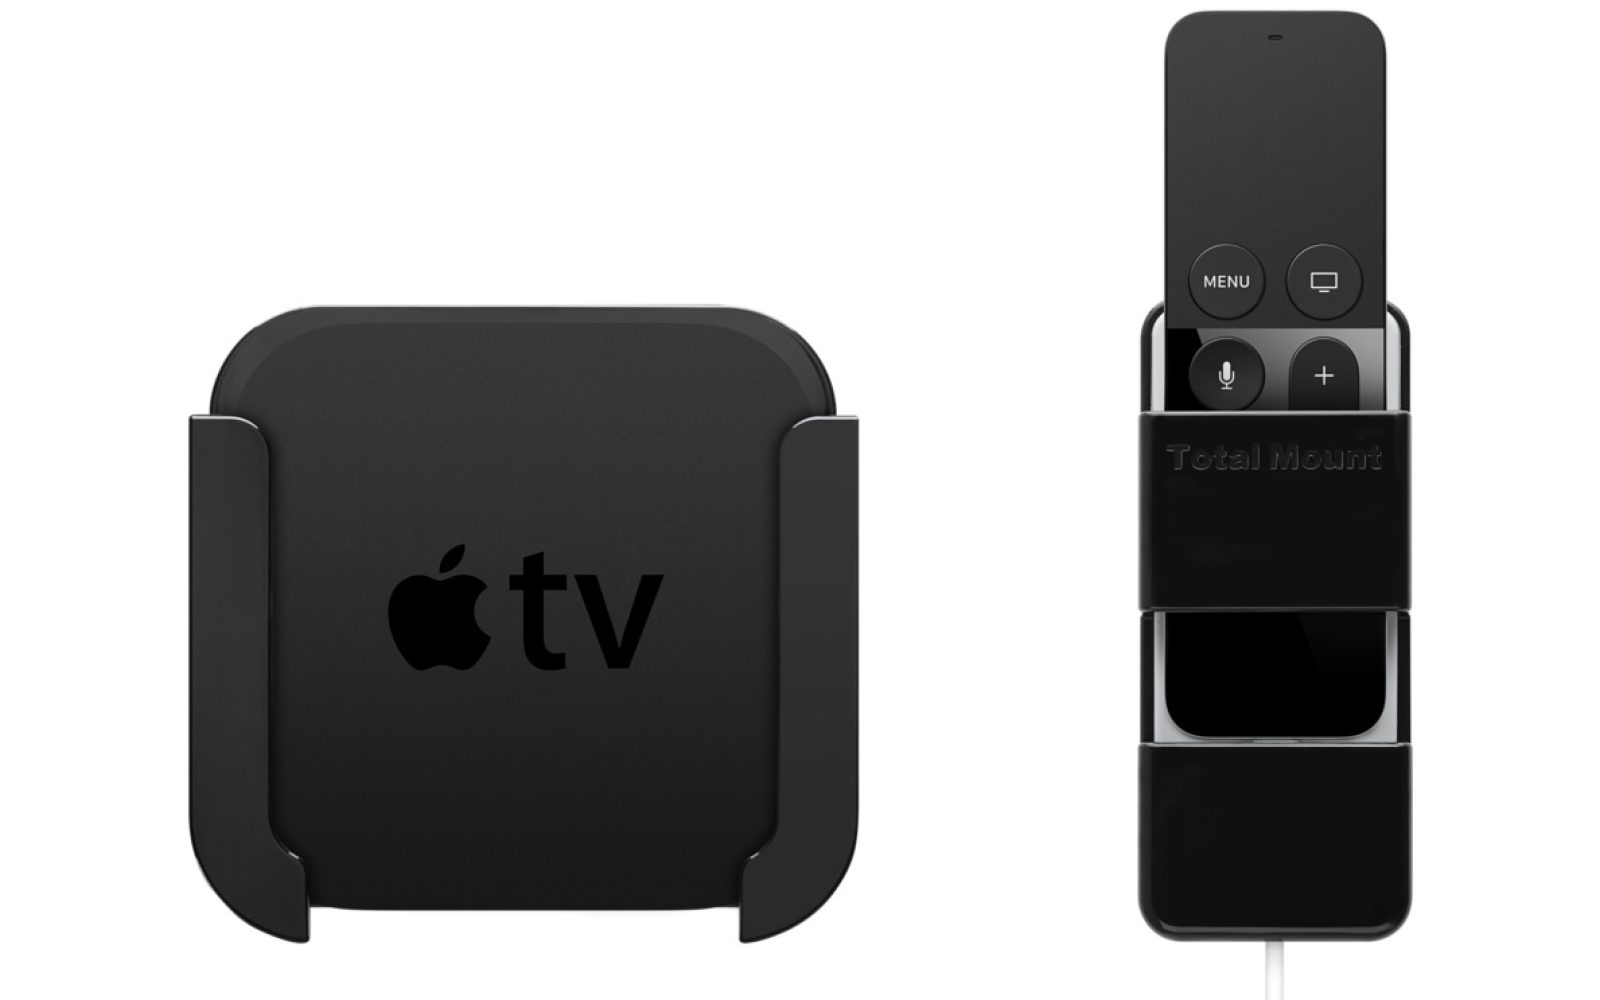 apple tv - Page 2 of 7 - 9to5Toys